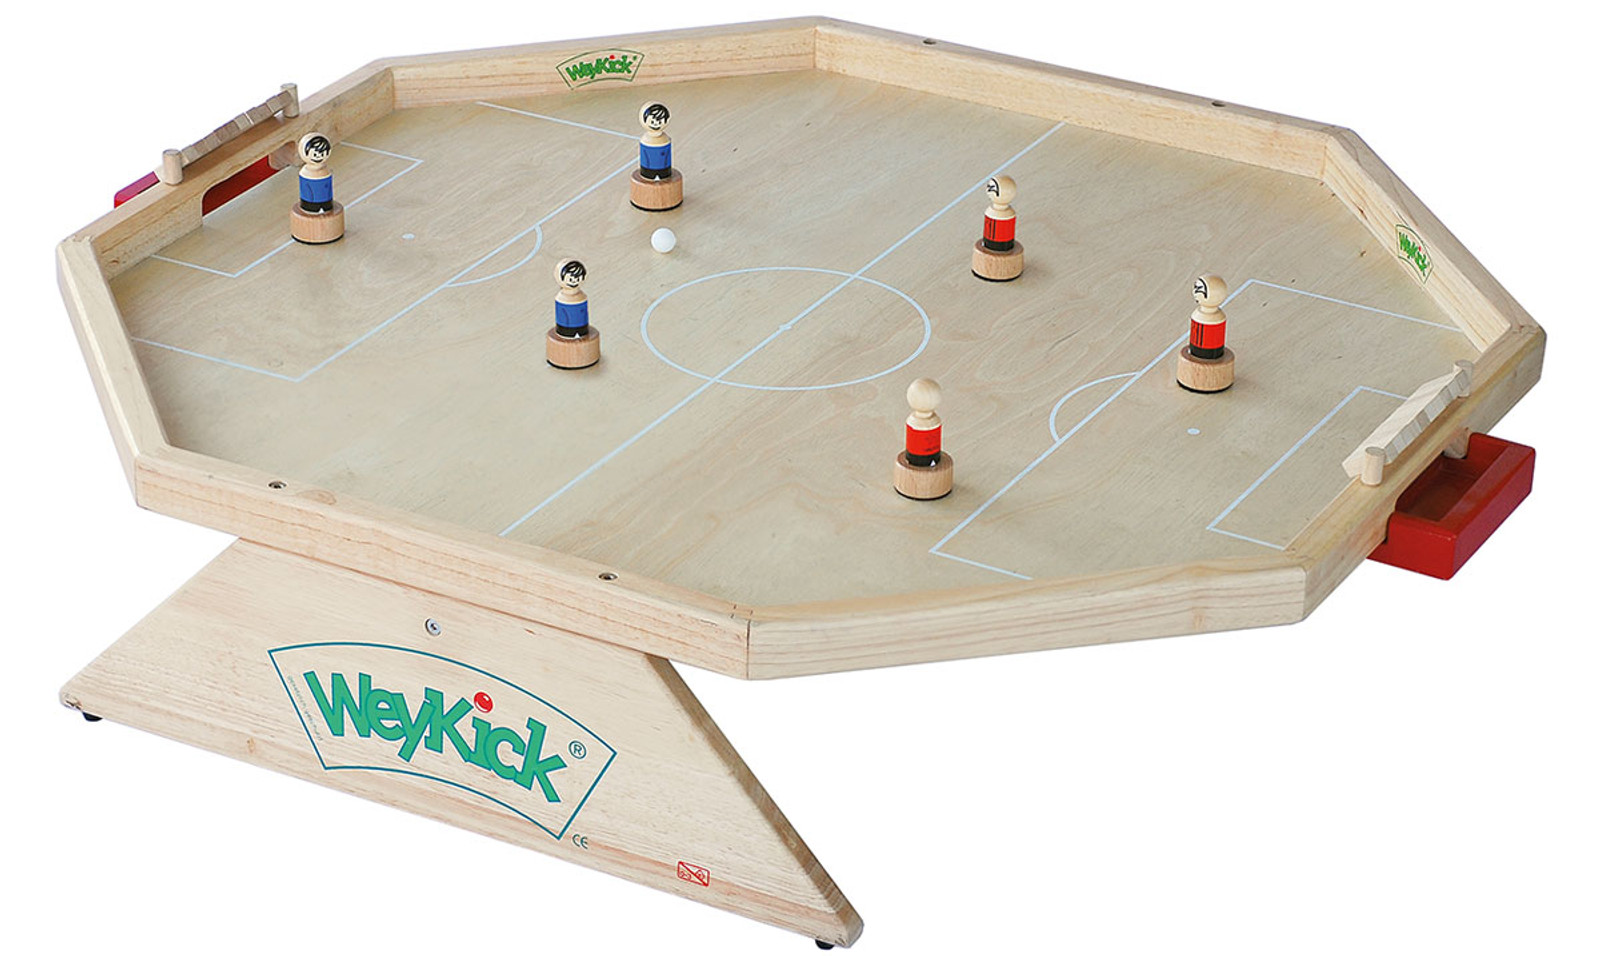 weykick arena 7700 magnetfu ball f r 2 6 spielerinnen material holz spielfl che 82 x 88. Black Bedroom Furniture Sets. Home Design Ideas